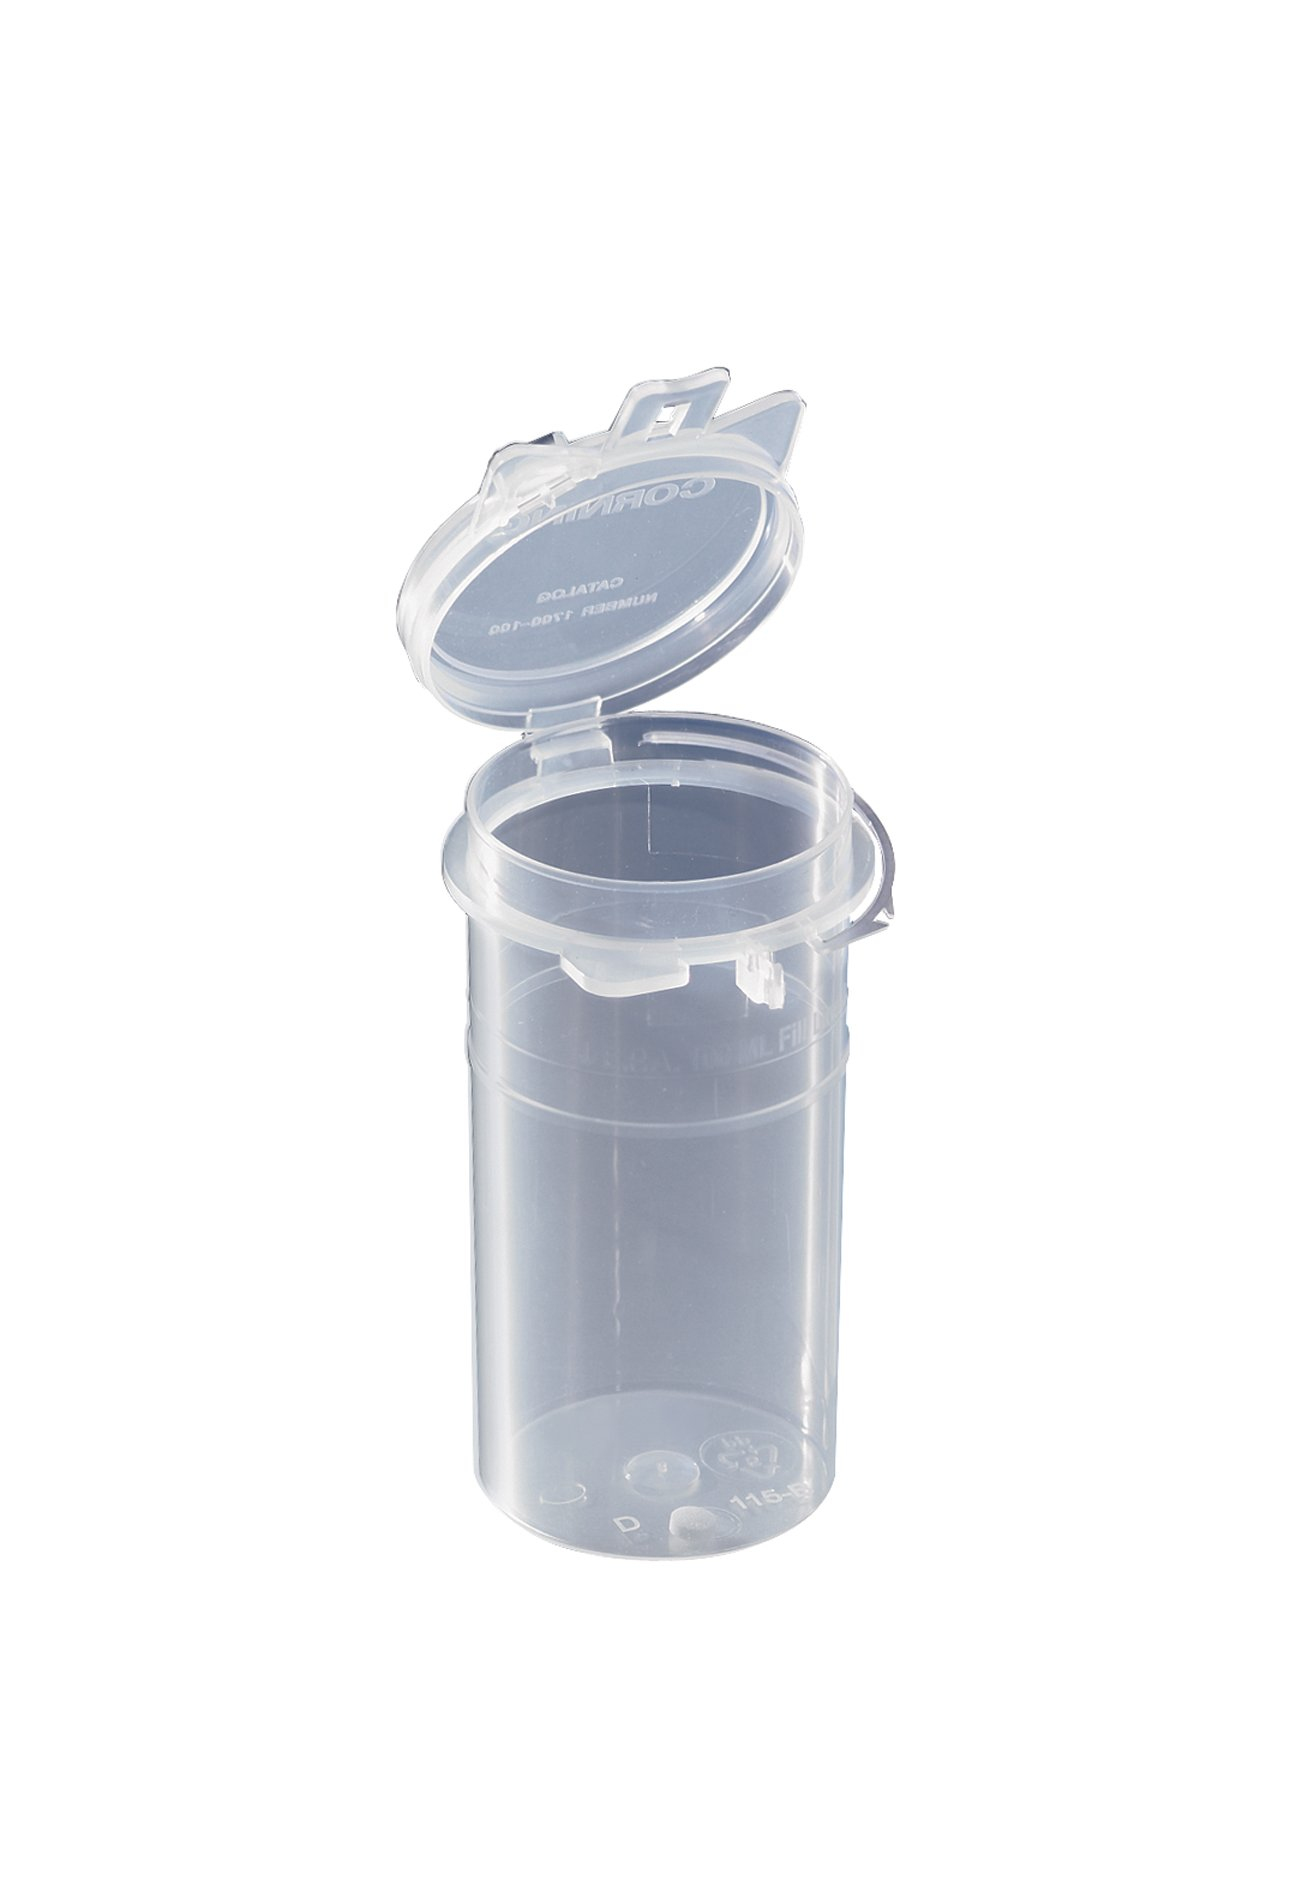 Corning Polypropylene Coliform Wide Mouth Sample Container, Sterile with Sodium Thiosulfate Tablet (Case of 100)